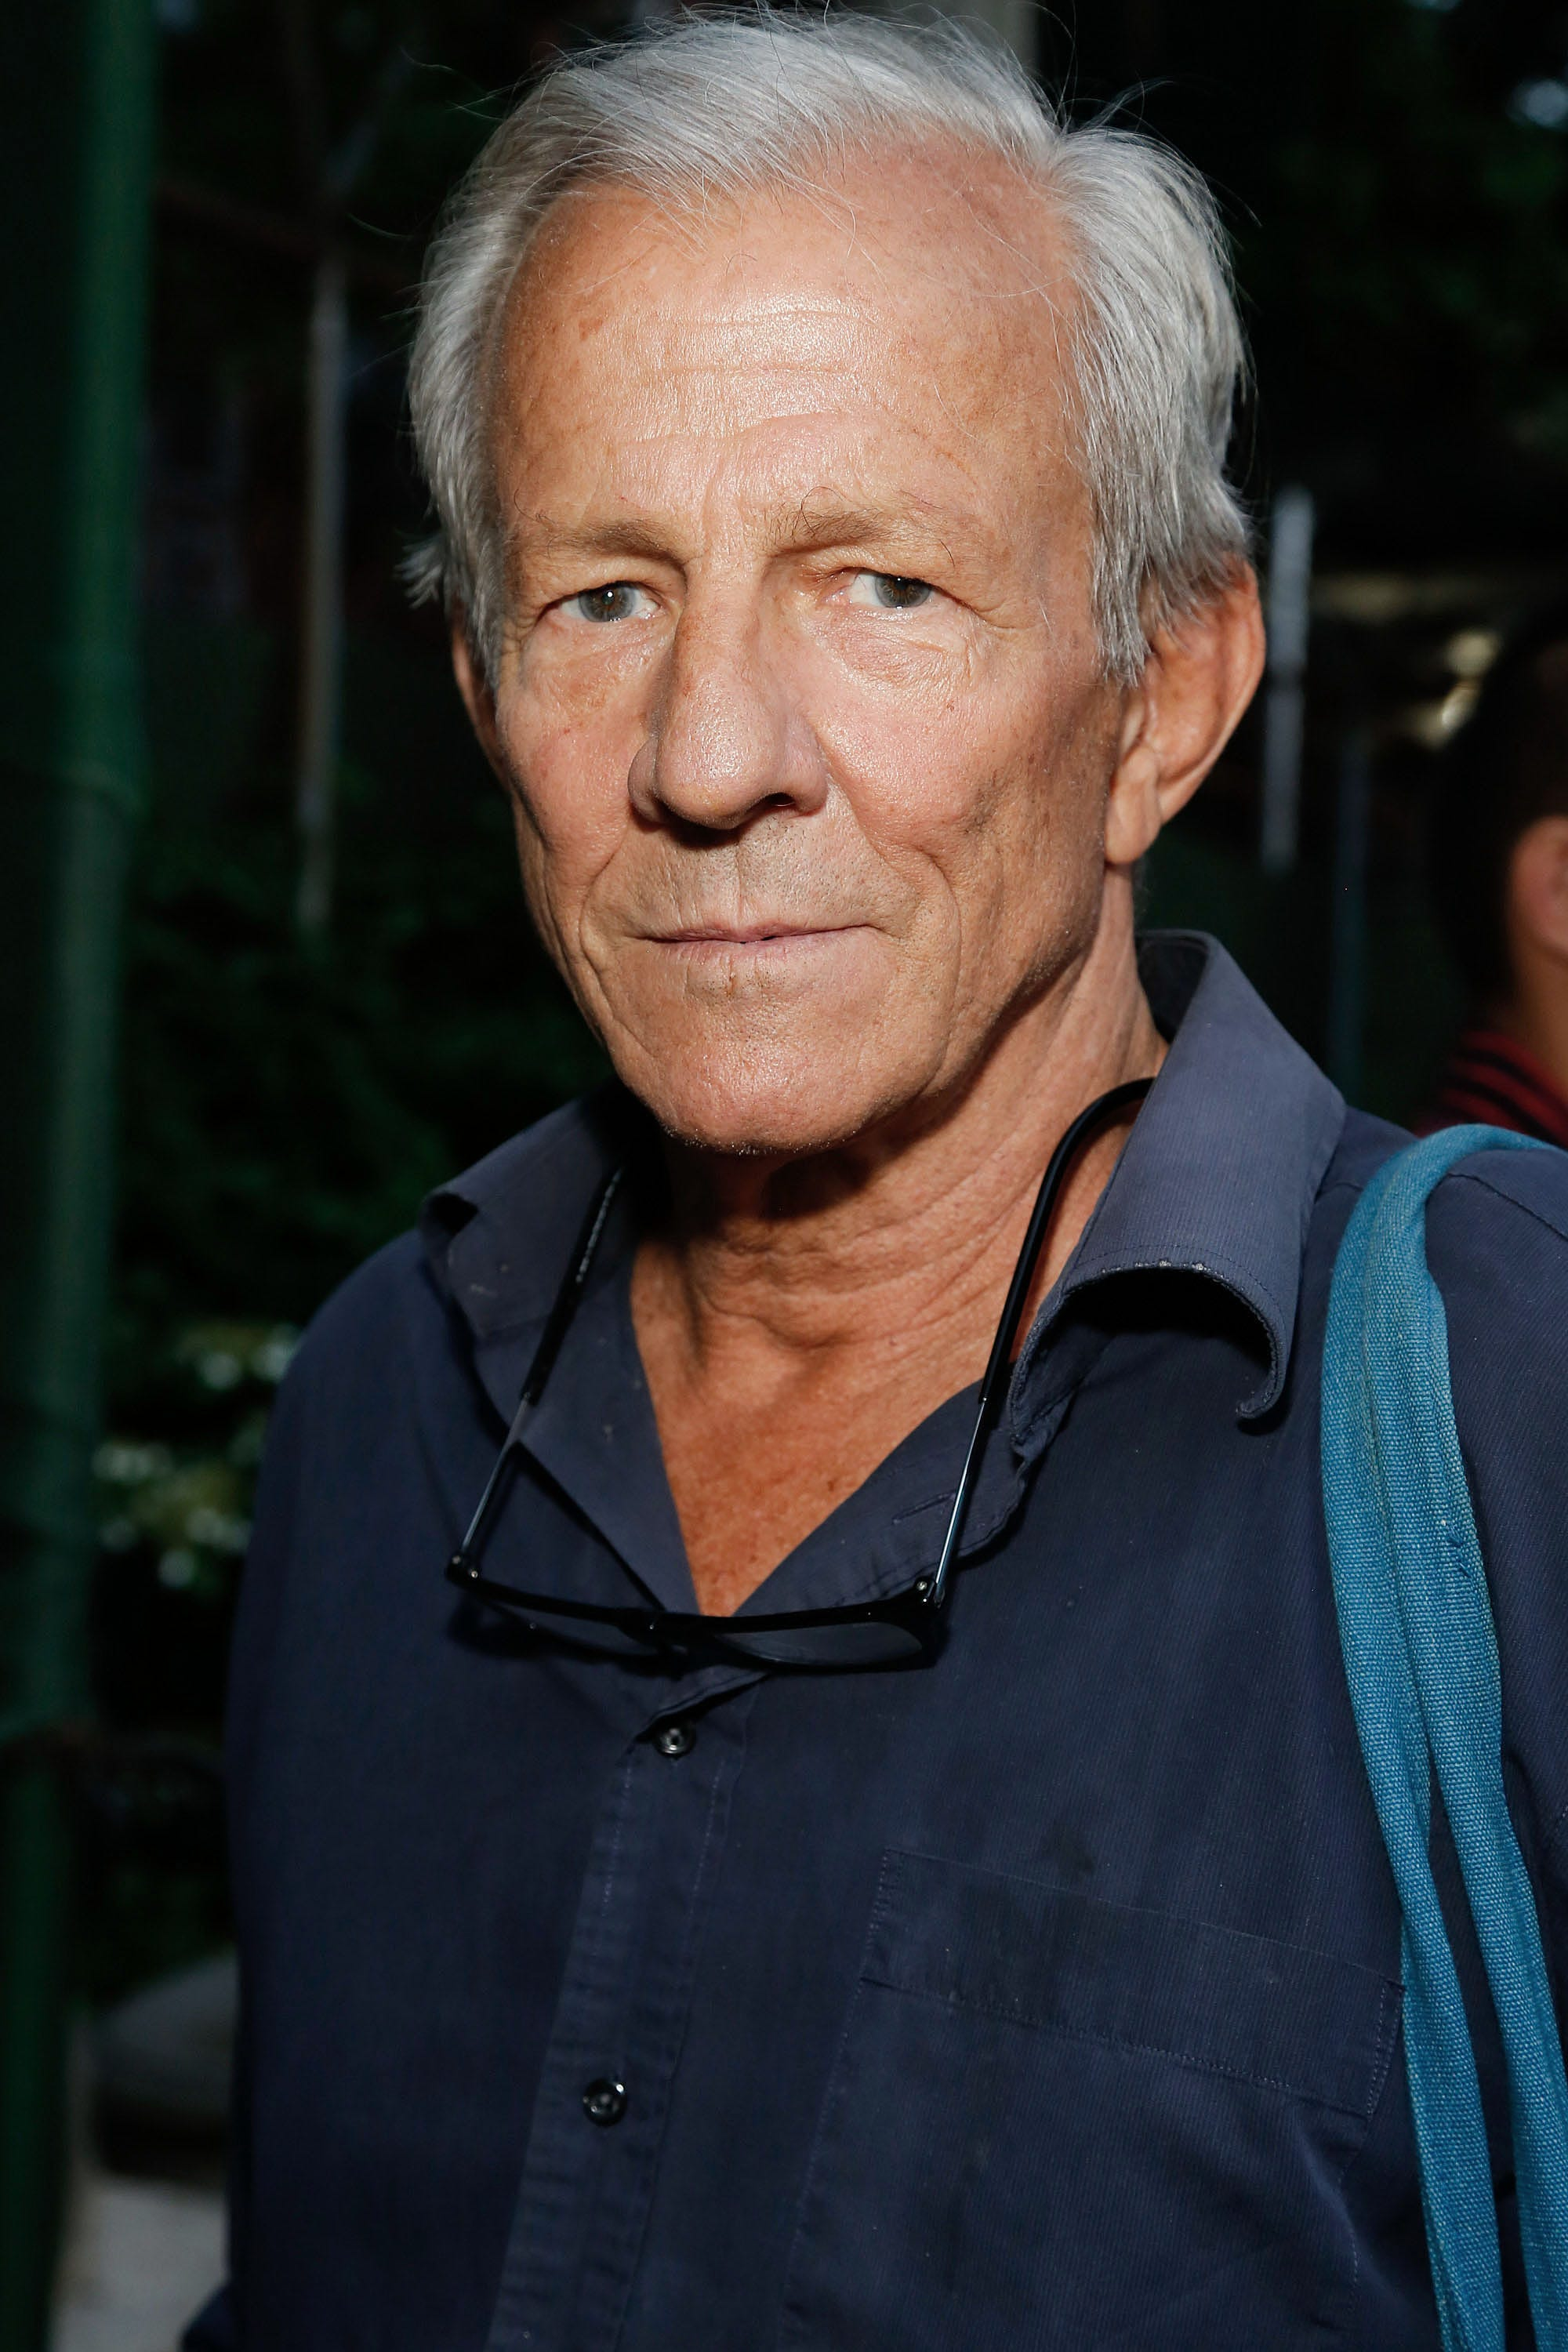 Photographer Peter Beard confirmed dead at 82 after going missing for nearly three weeks